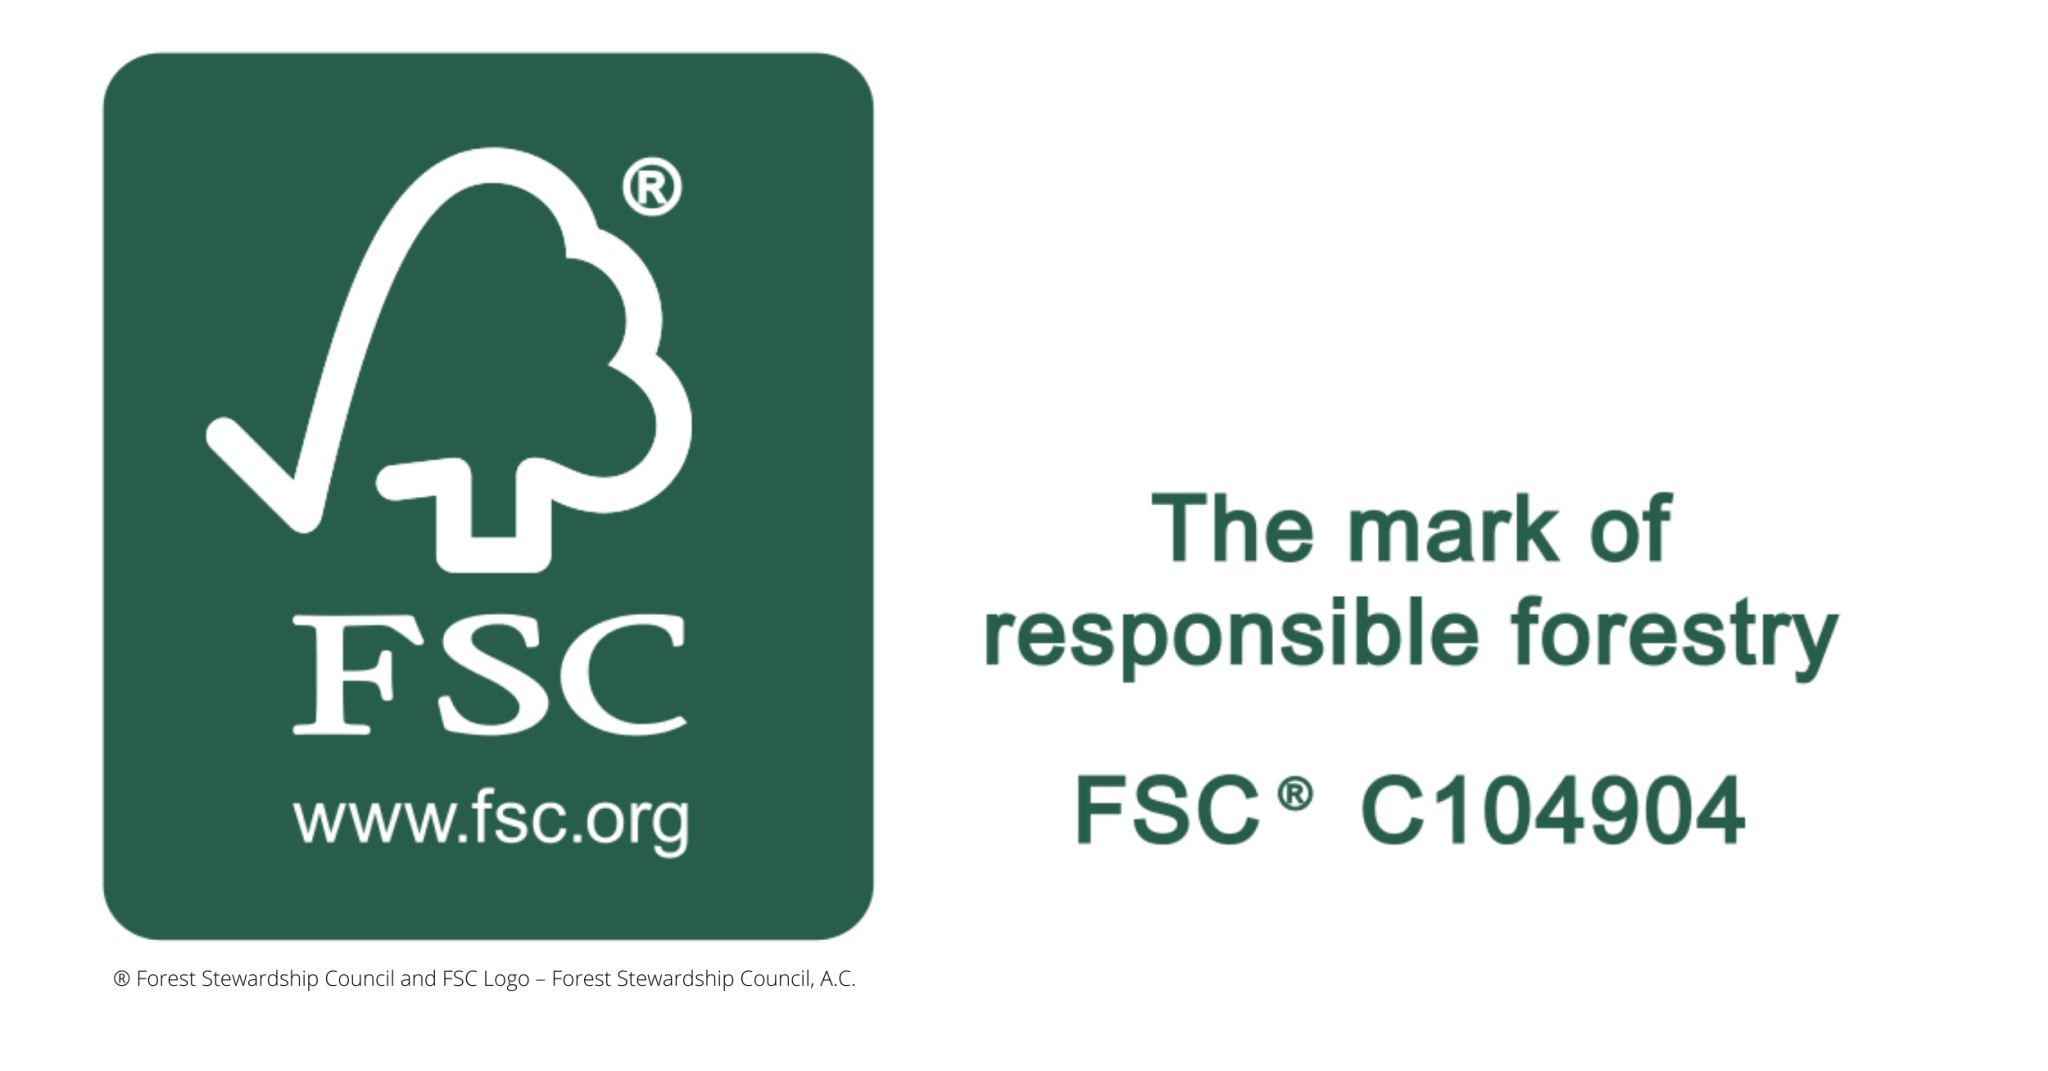 , Kruger Products celebrates the FSC ® Chain of Custody certified in the new plant and announces important investments